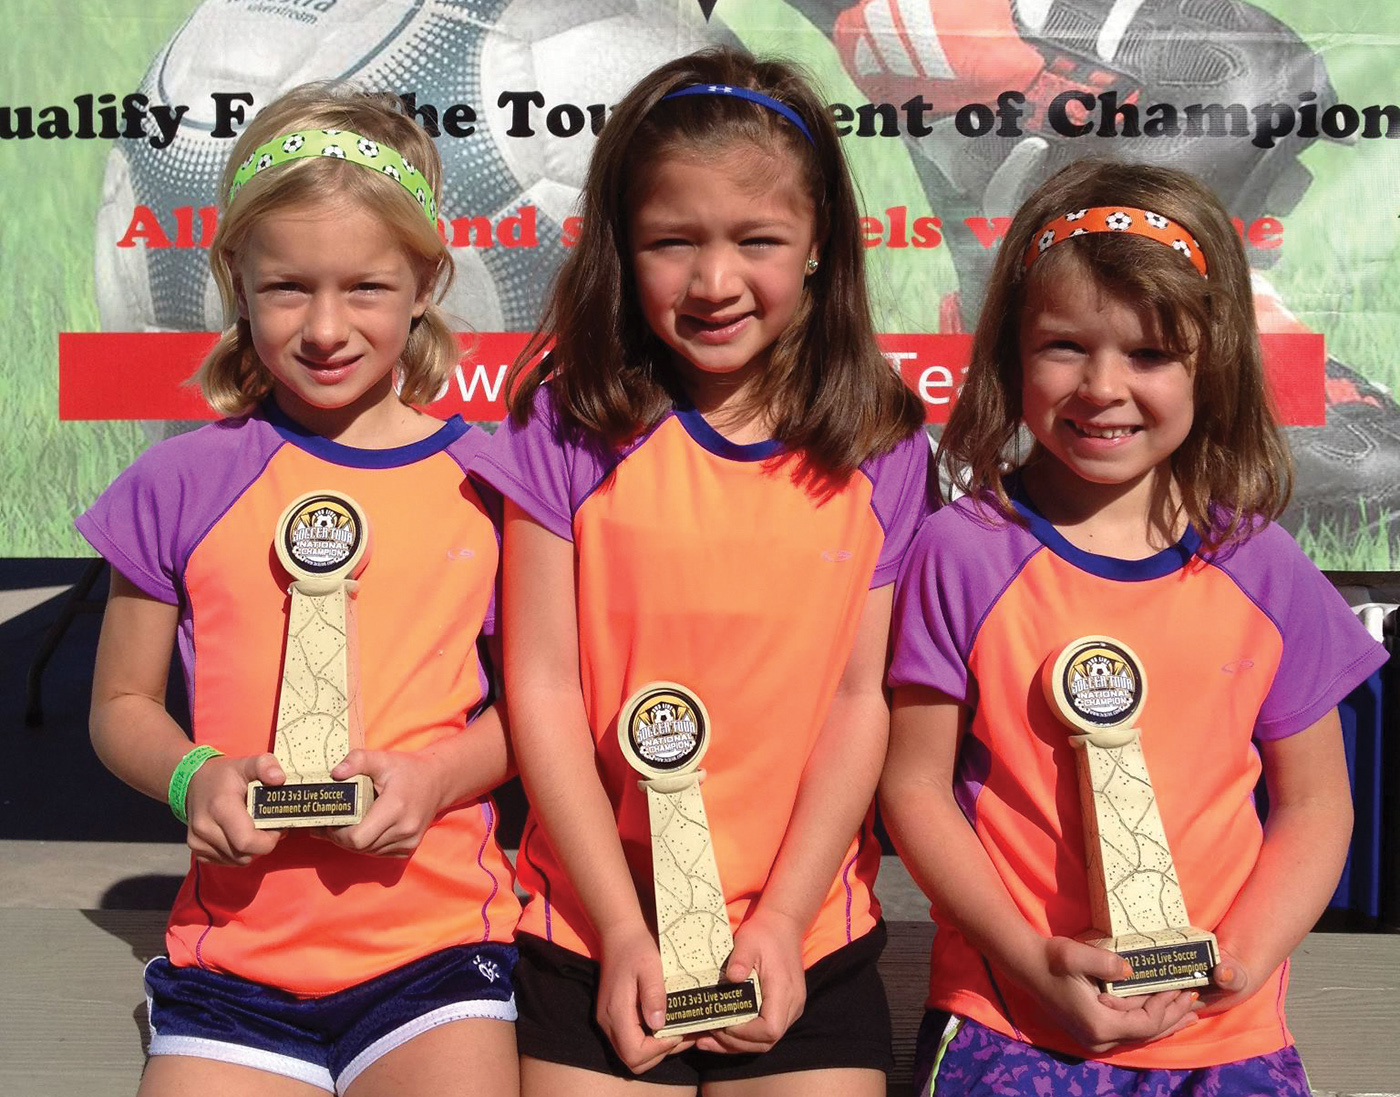 Soccer organizations such as the 3v3 Live Soccer Tour have seen considerable growth in recent years by staging tournaments that feature three players per side, allowing for more scoring by participants. Photo courtesy of 3v3 Live